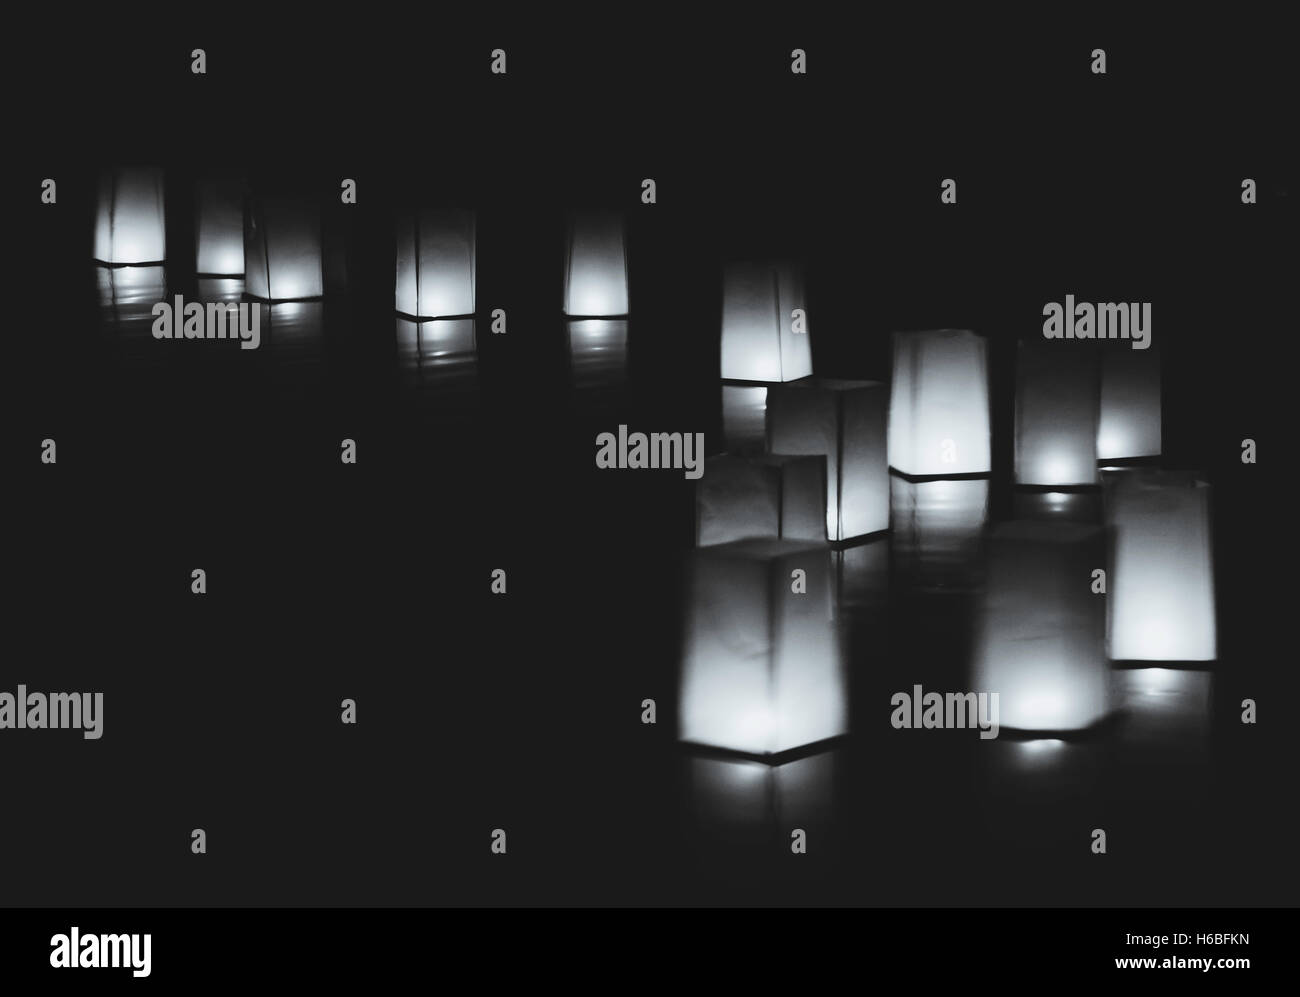 Hygge water floating candle lanterns in water at a wedding in California, black and white image. - Stock Image